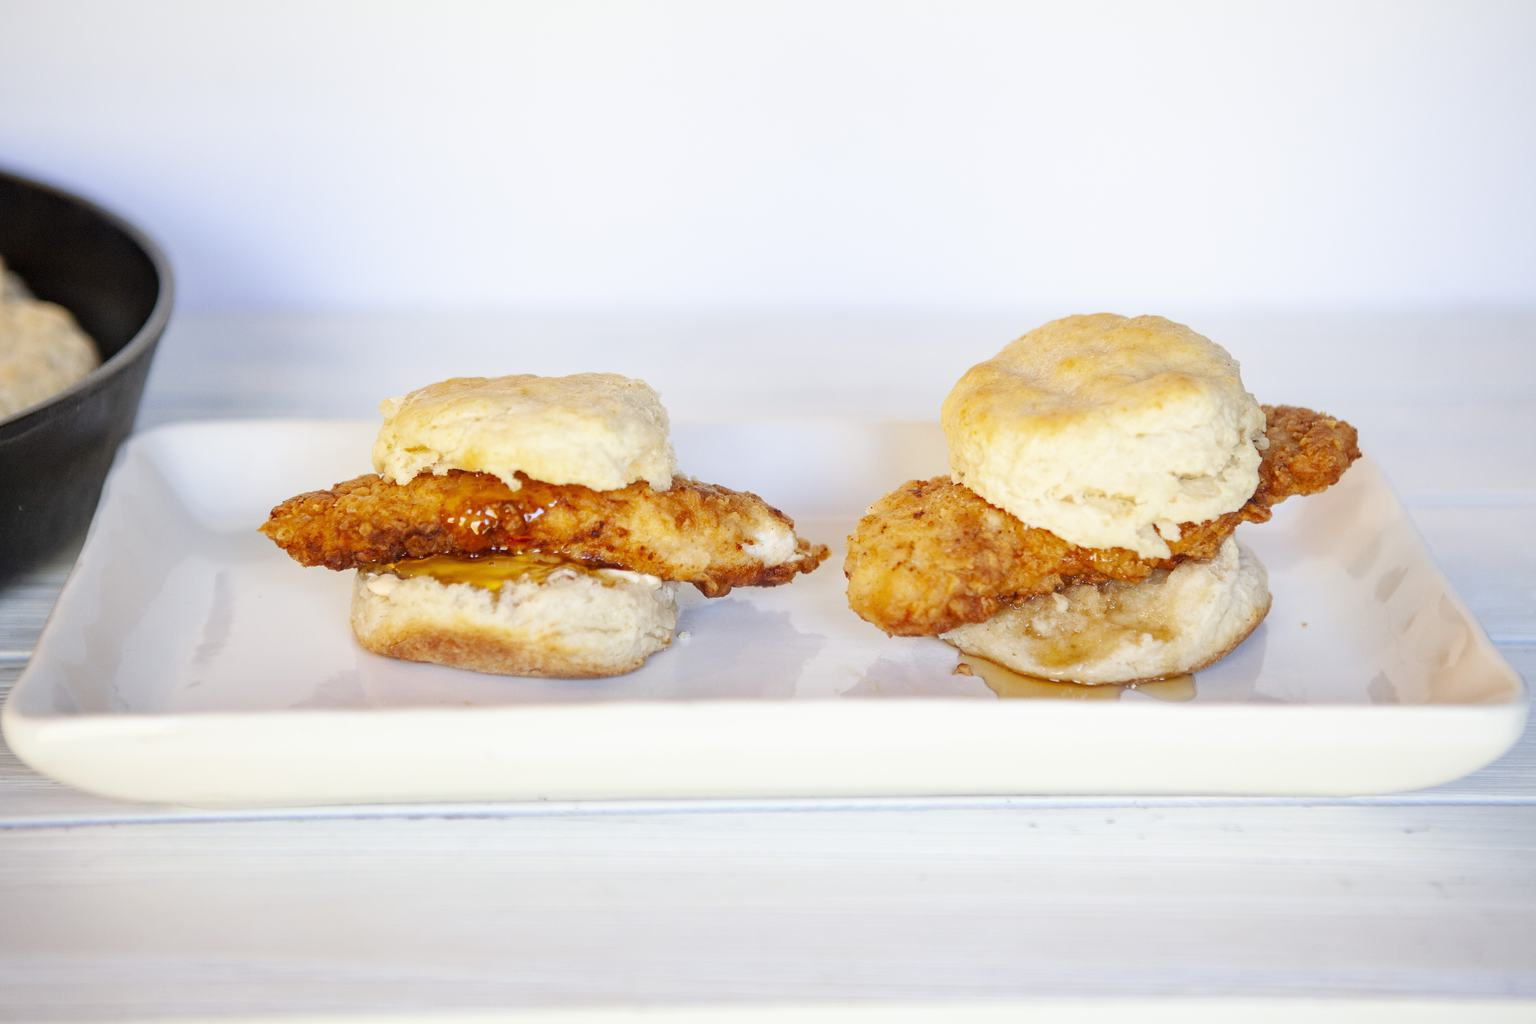 Spicy cajun Chicken Biscuits made with homemade buttermilk biscuits